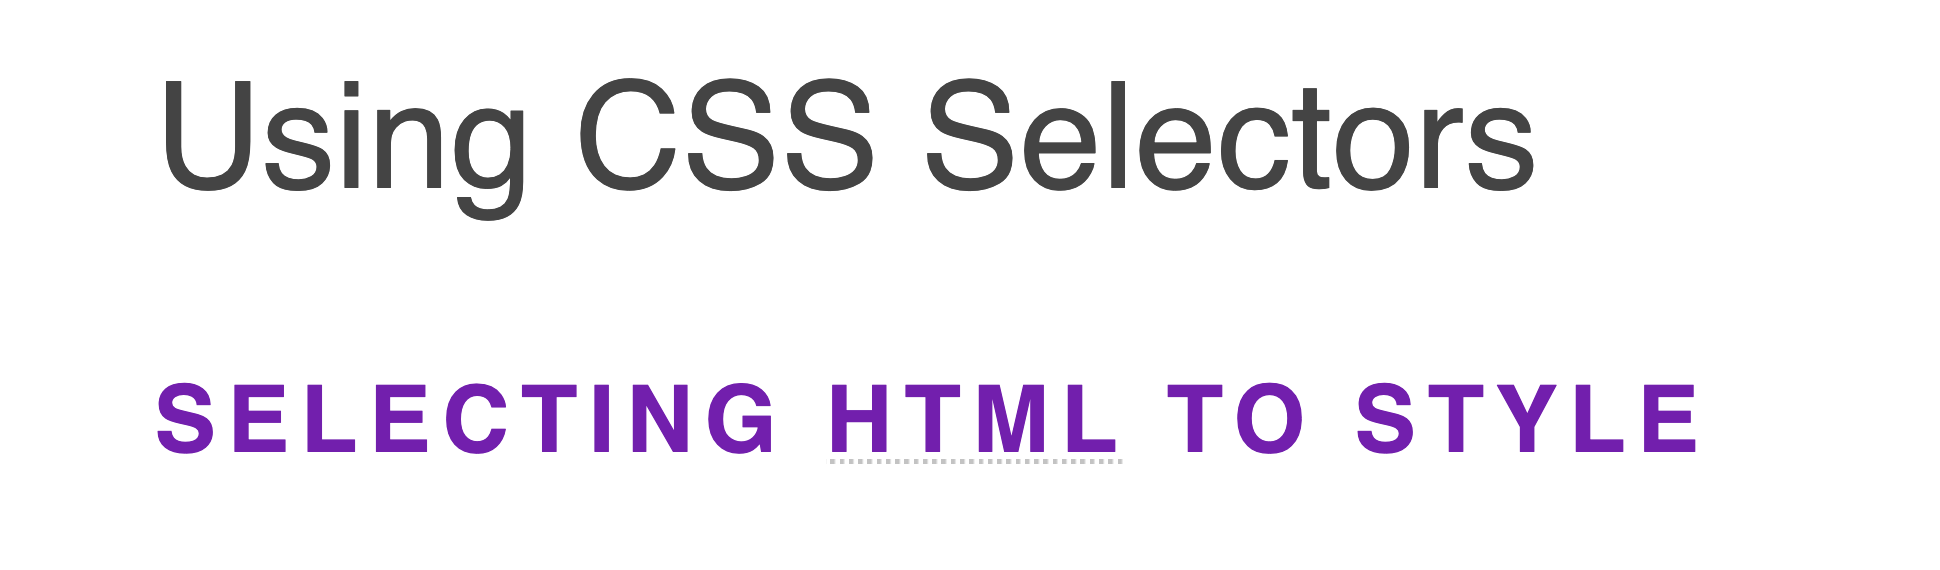 Short bold uppercase headings in purple with an abbreviation text with a light gray dotted underline.